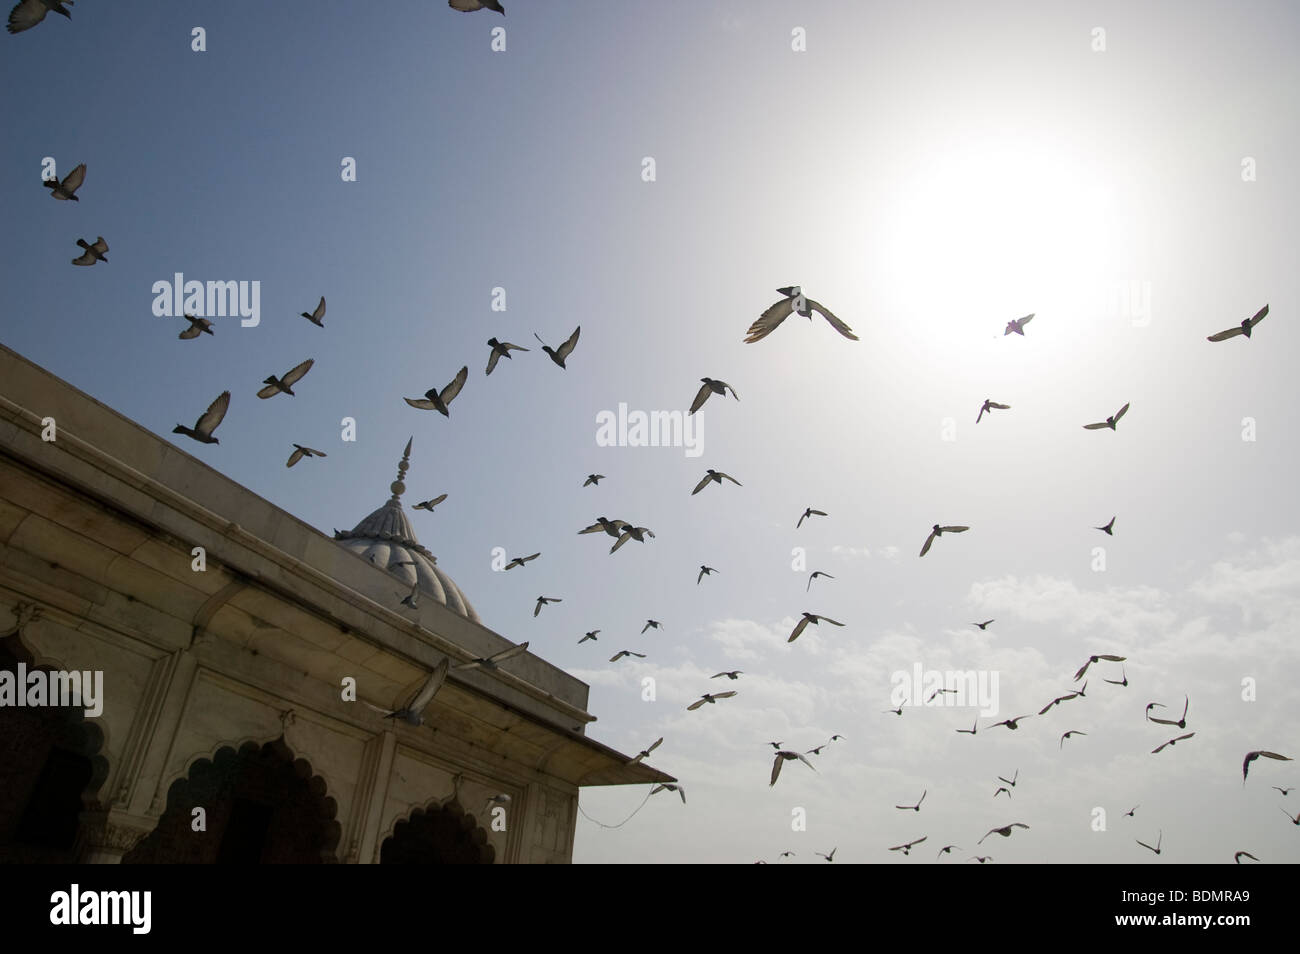 A group of birds flies away over the Red Fort in New Delhi, India. - Stock Image